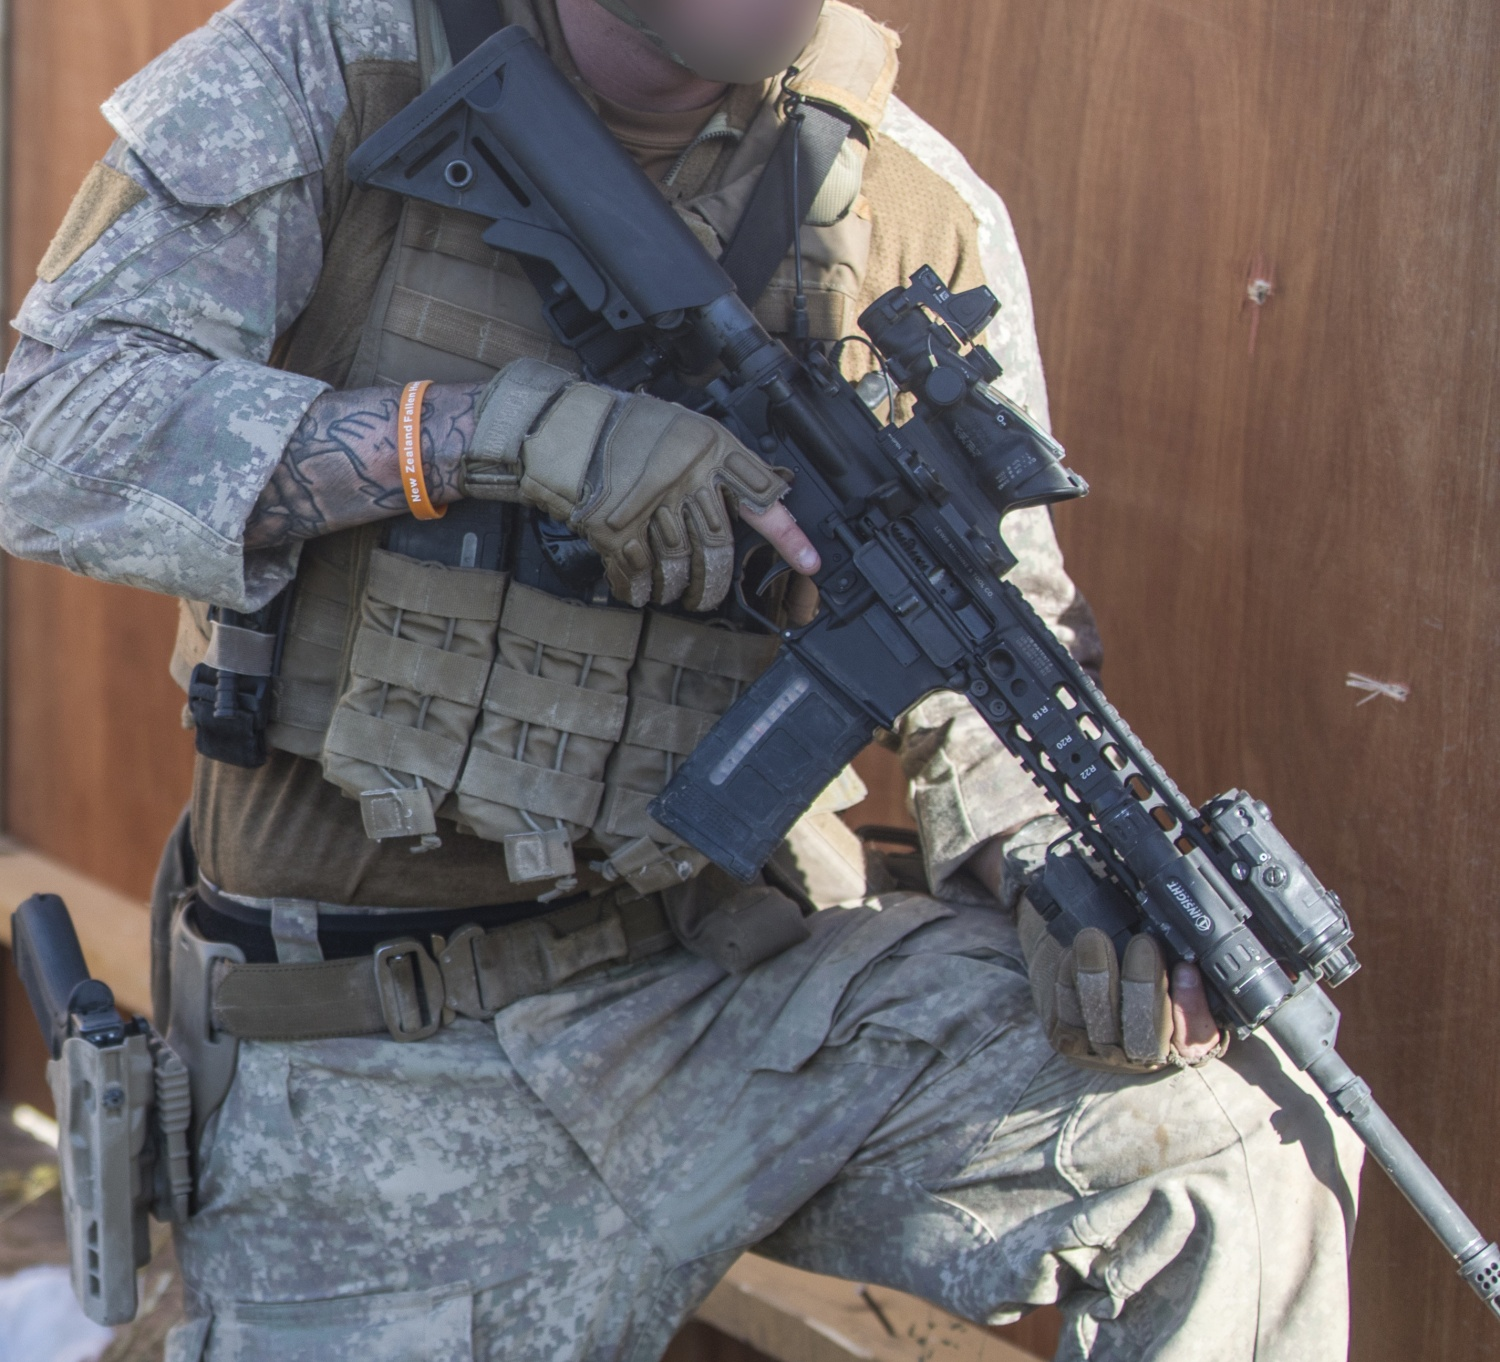 LMT Warranties Components with New Zealand Defense Forces